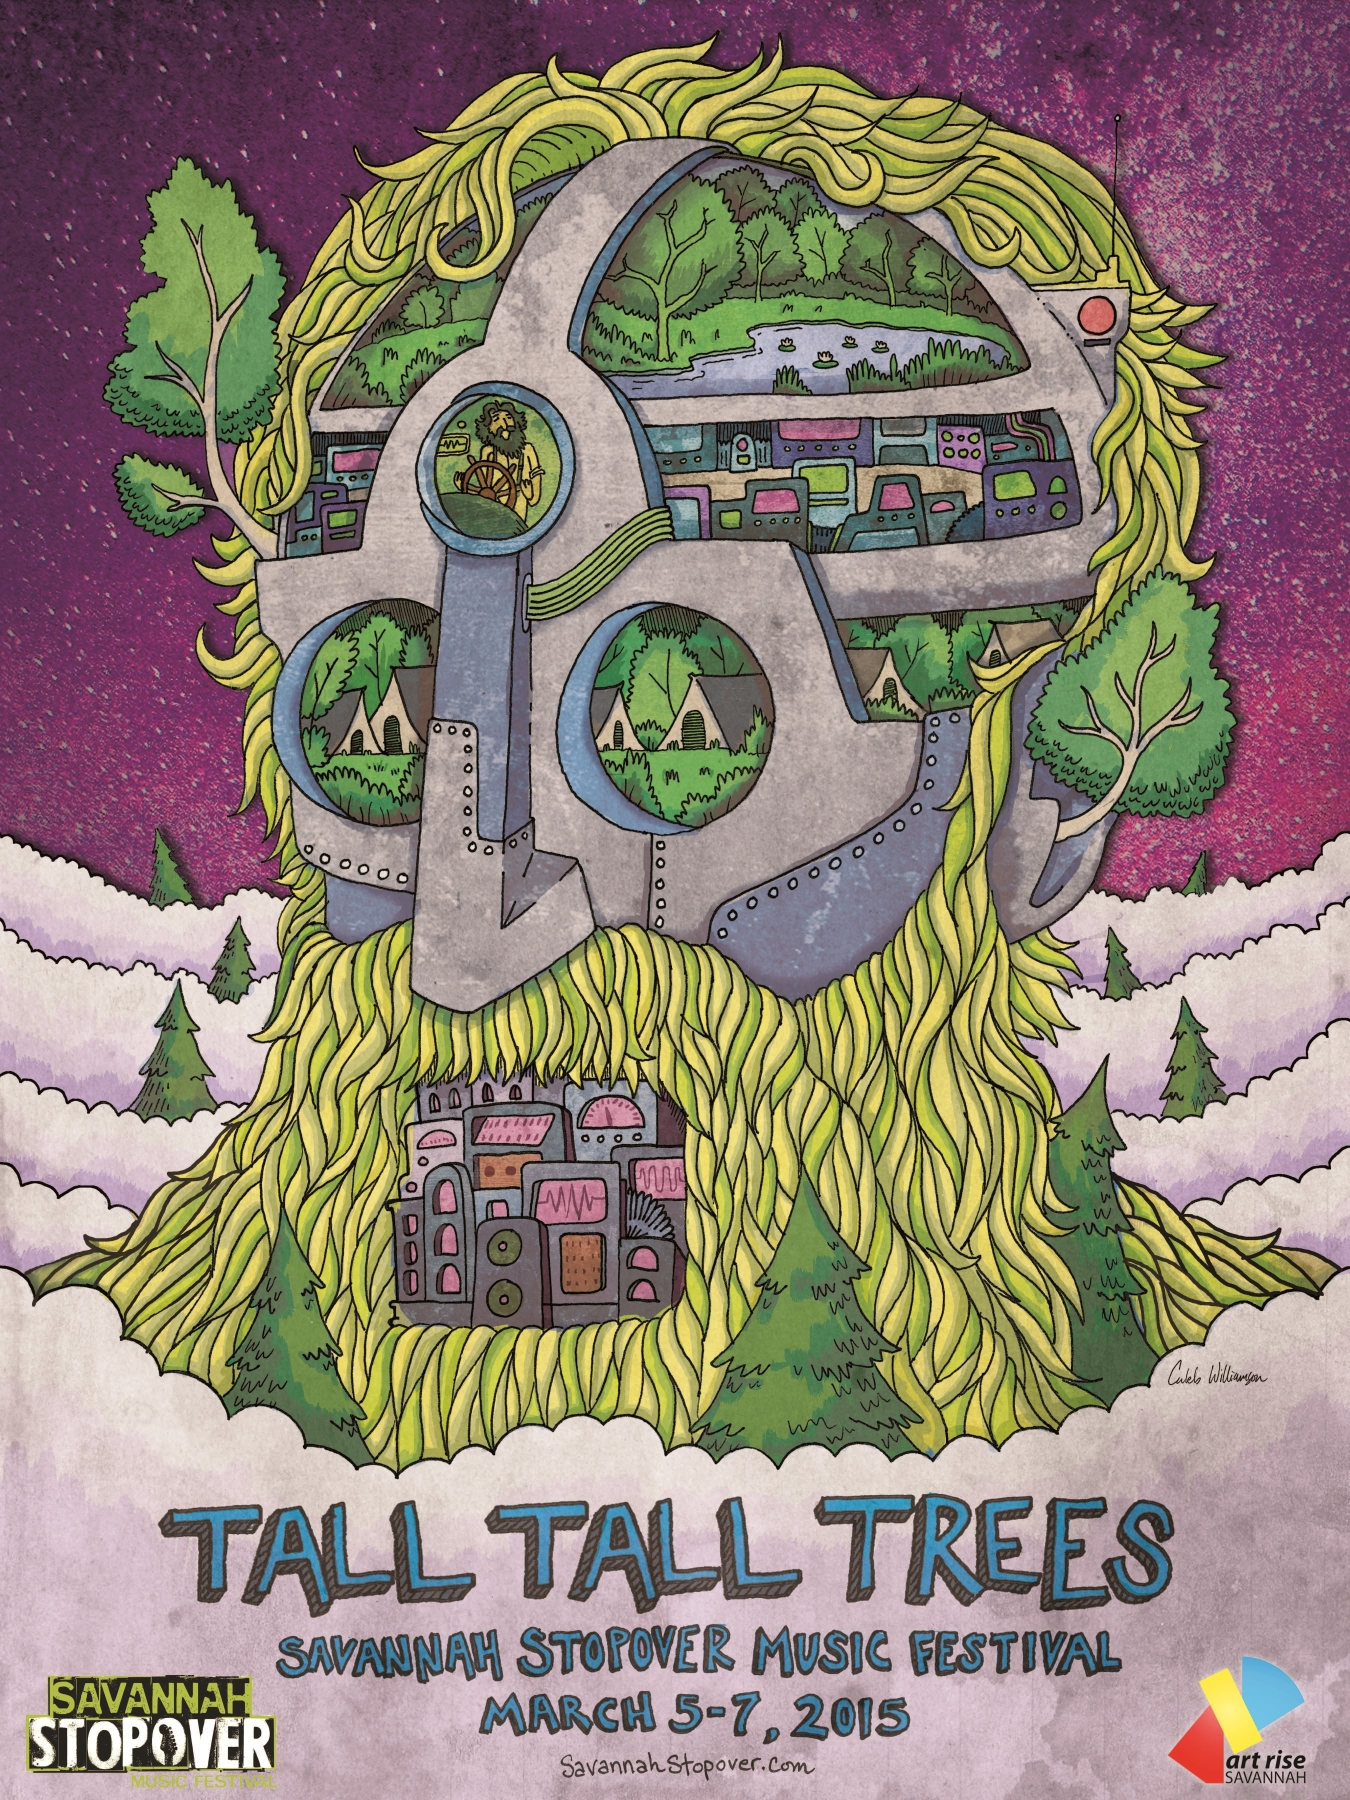 Tall Tall Trees_Williamson Caleb_web.jpg